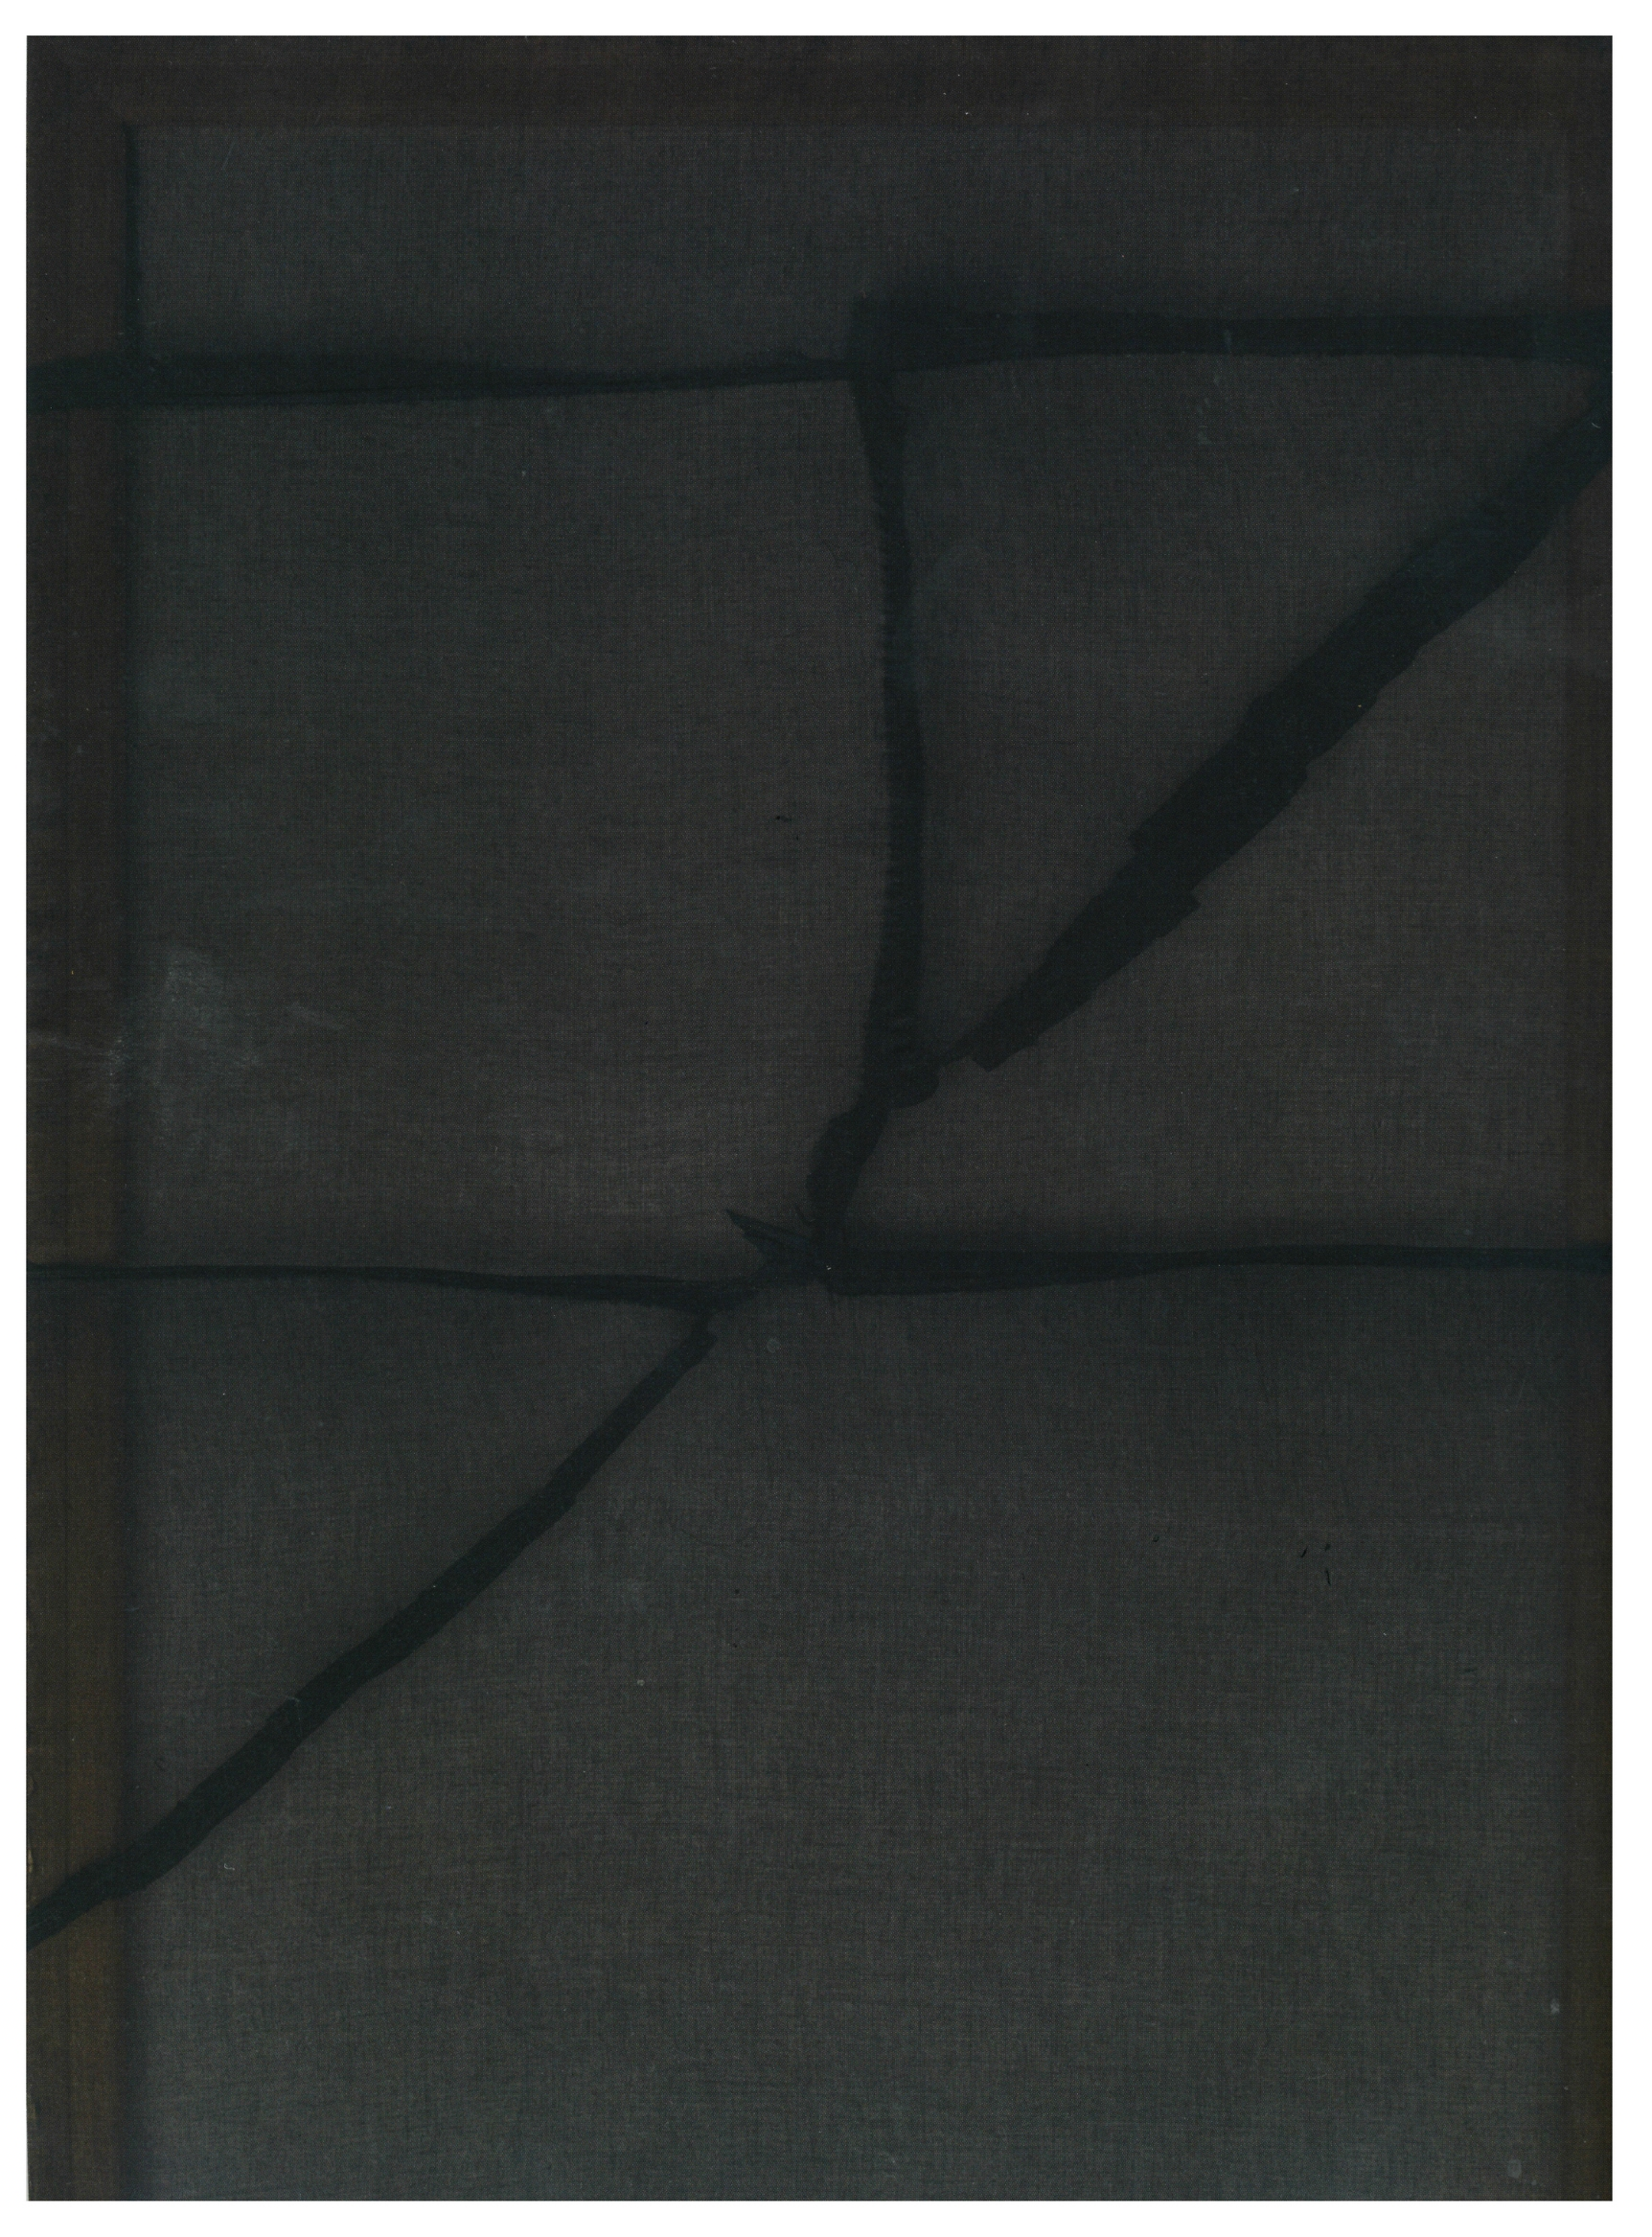 Sergej Jensen,  Untitled (Schwarz/Durchsichtig) , 2009    sewn fabric    Simon Lee Gallery, London    Image: Phillips Contemporary Art, London Evening Sale print catalog, June 29, 2015.